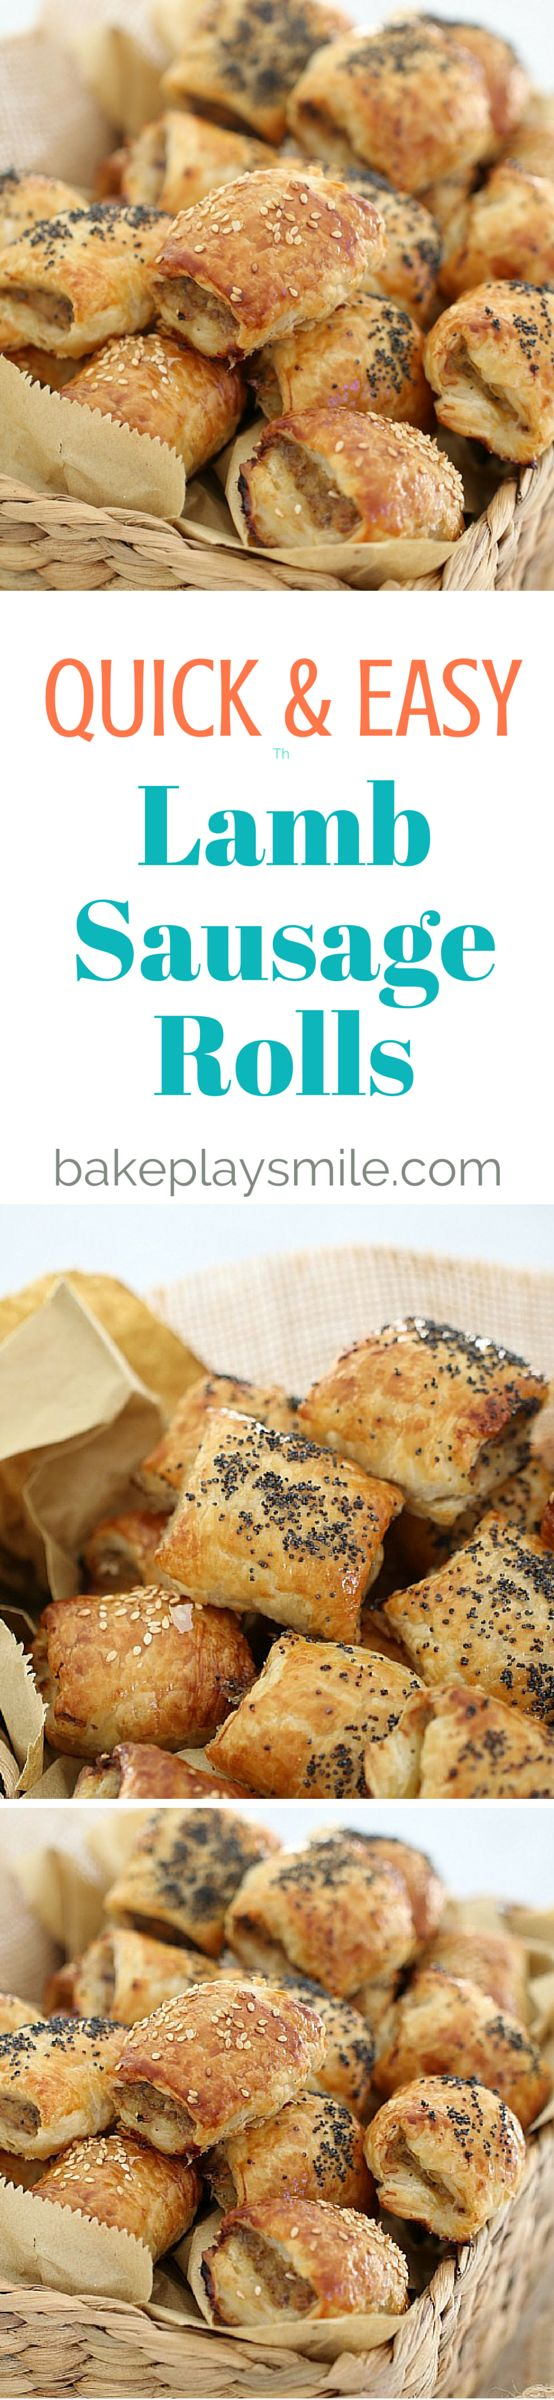 You can't go past these quick & easy lamb sausage rolls for a yummy snack or delicious lunch! Plan ahead by making a double batch and popping them into the freezer. #lamb #feta #sausagerolls #conventional #freezer #thermomix #easy #kids #snacks